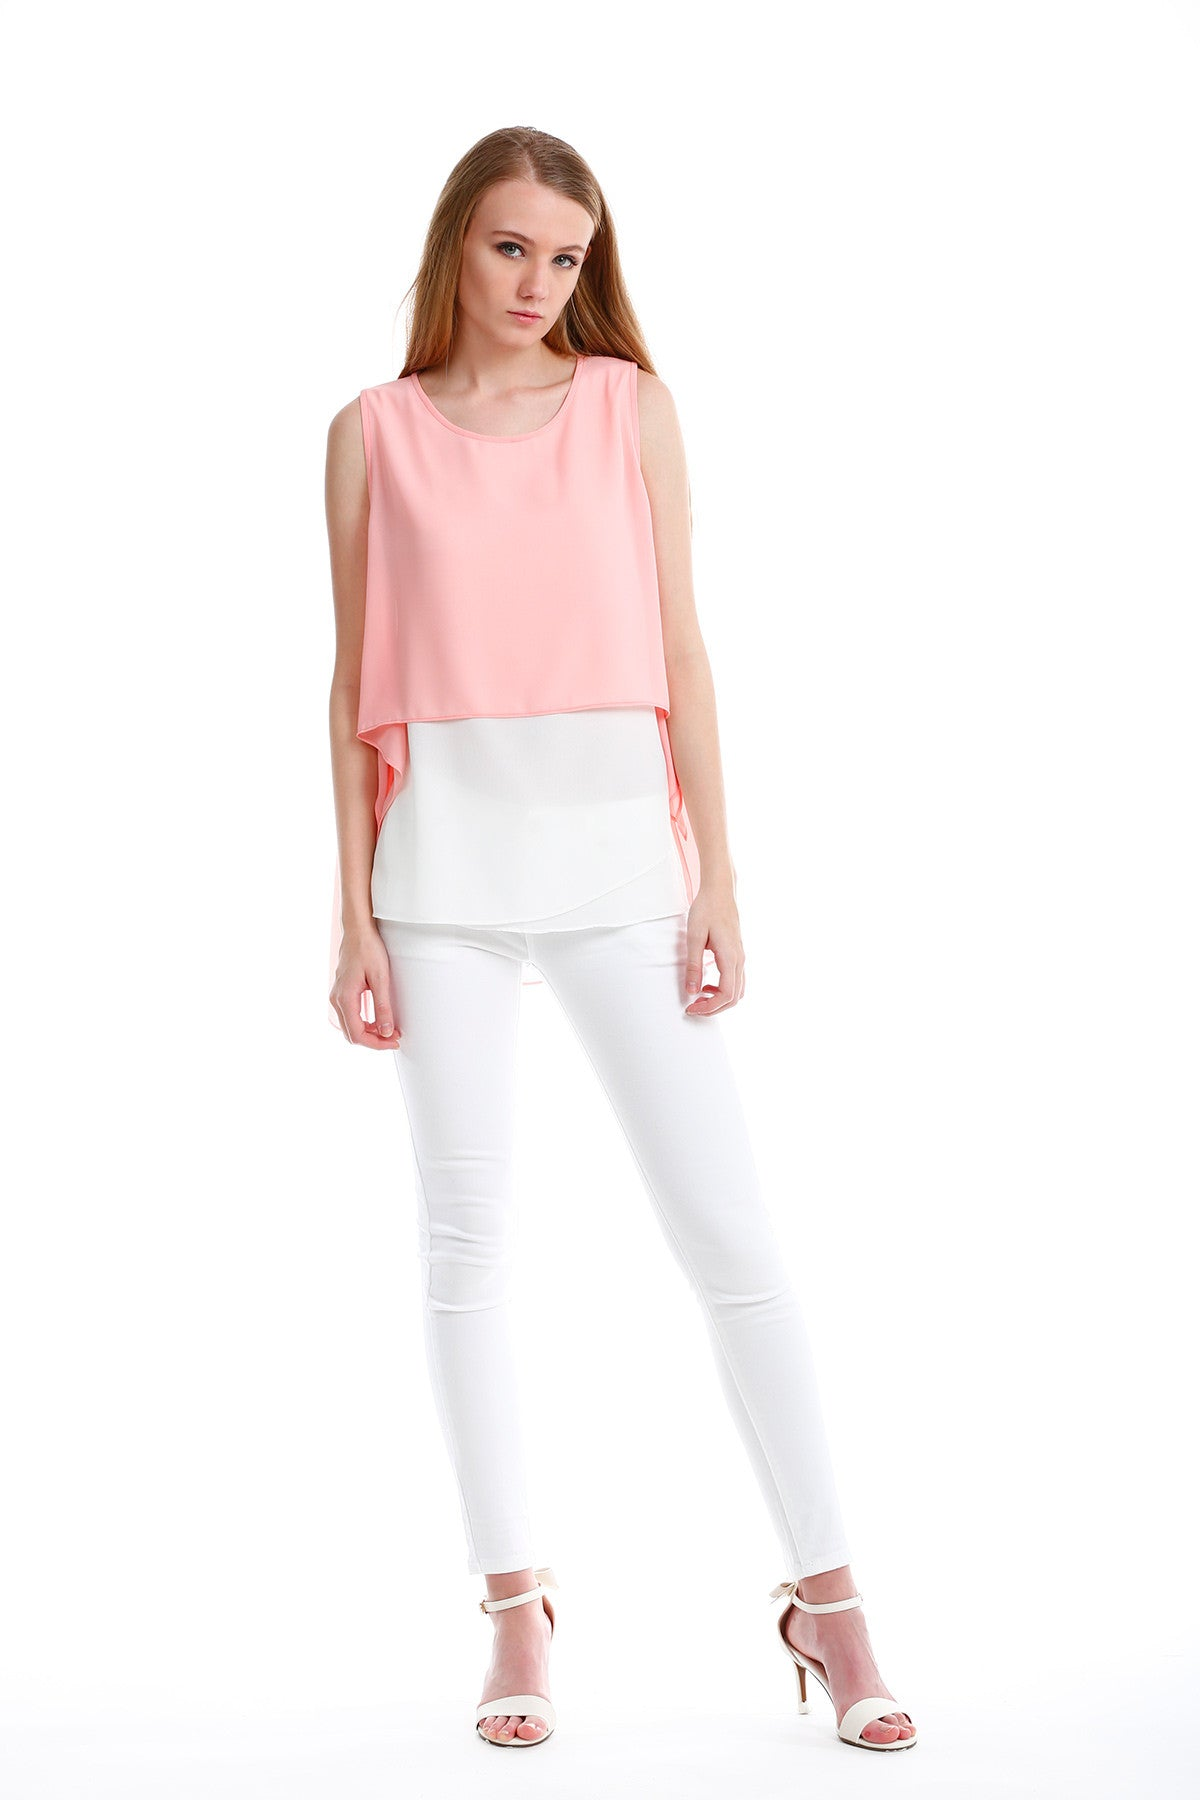 Chiffon Top with Elegant Overlay in Pink